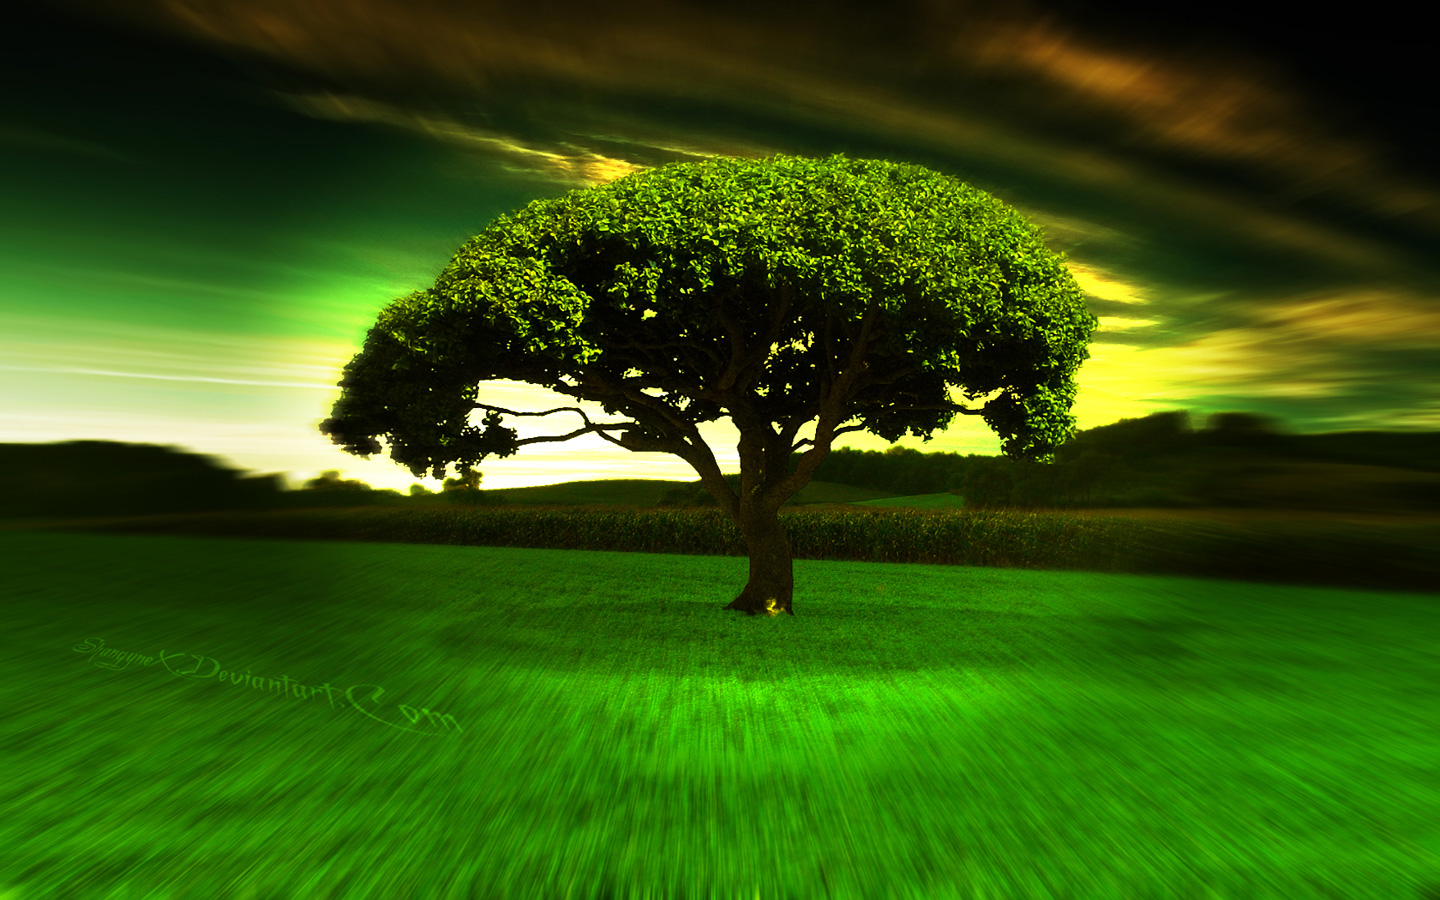 40 Cool Wallpapers 2013 Full HD1080p 1440x900